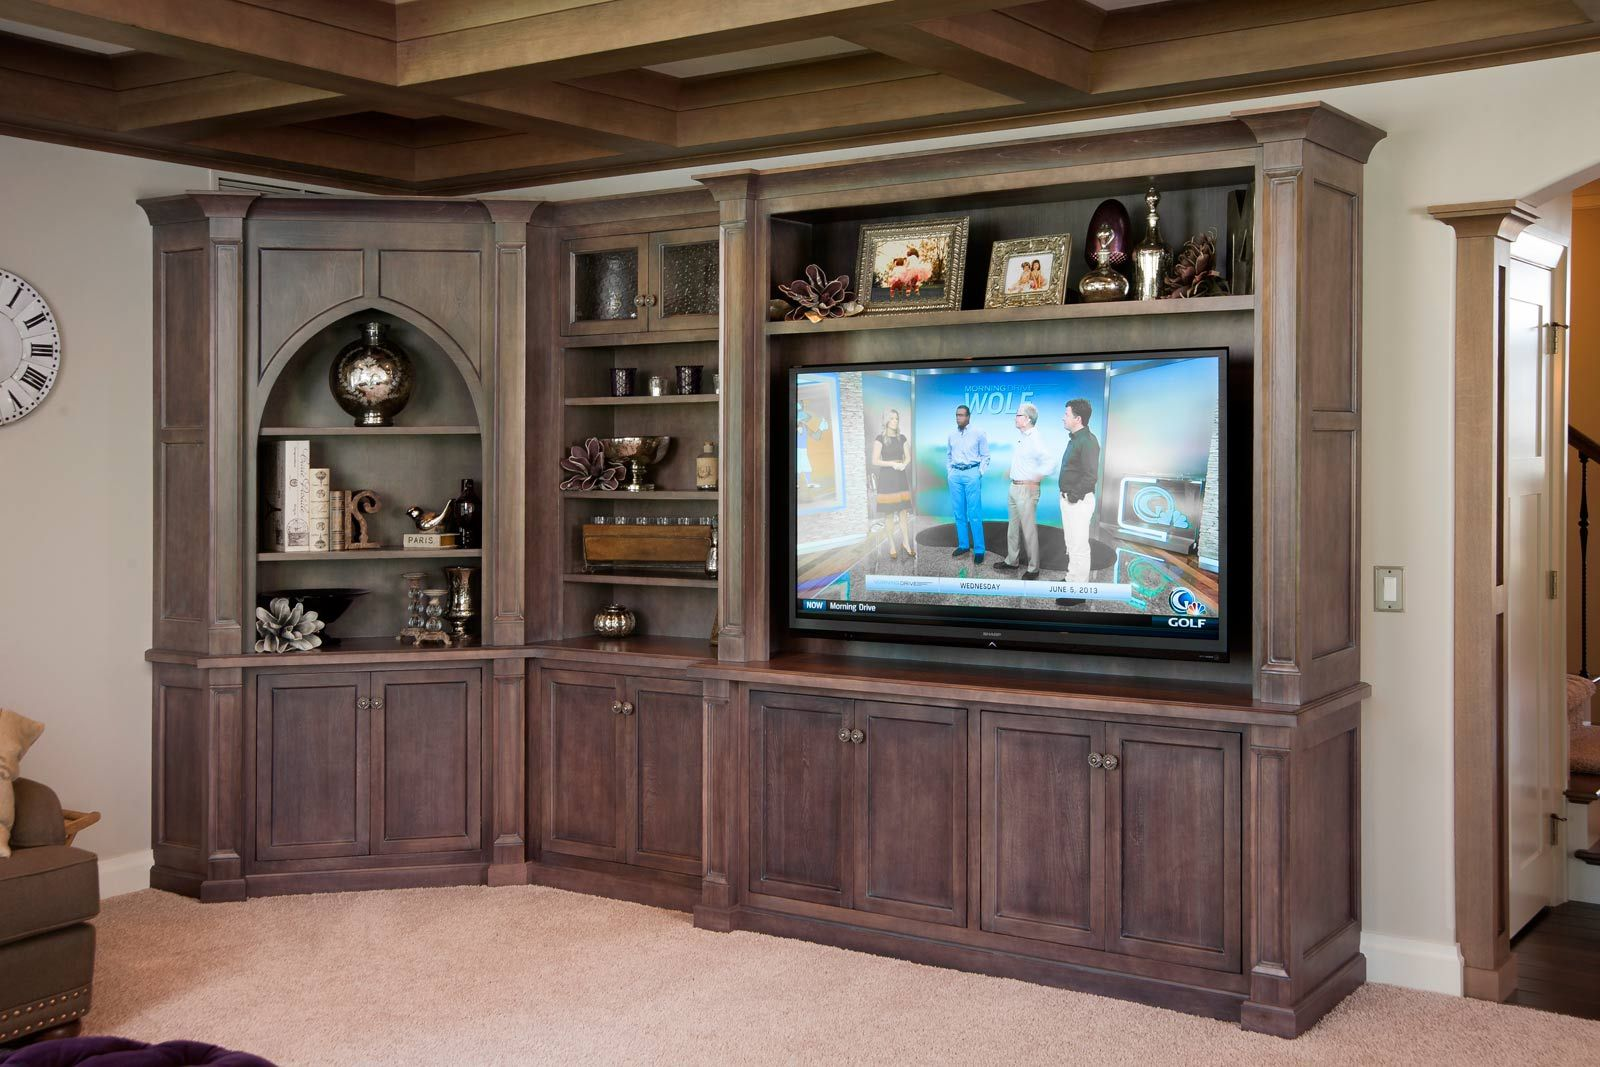 Mullet Cabinet Living Room Entertainment Area Crowned